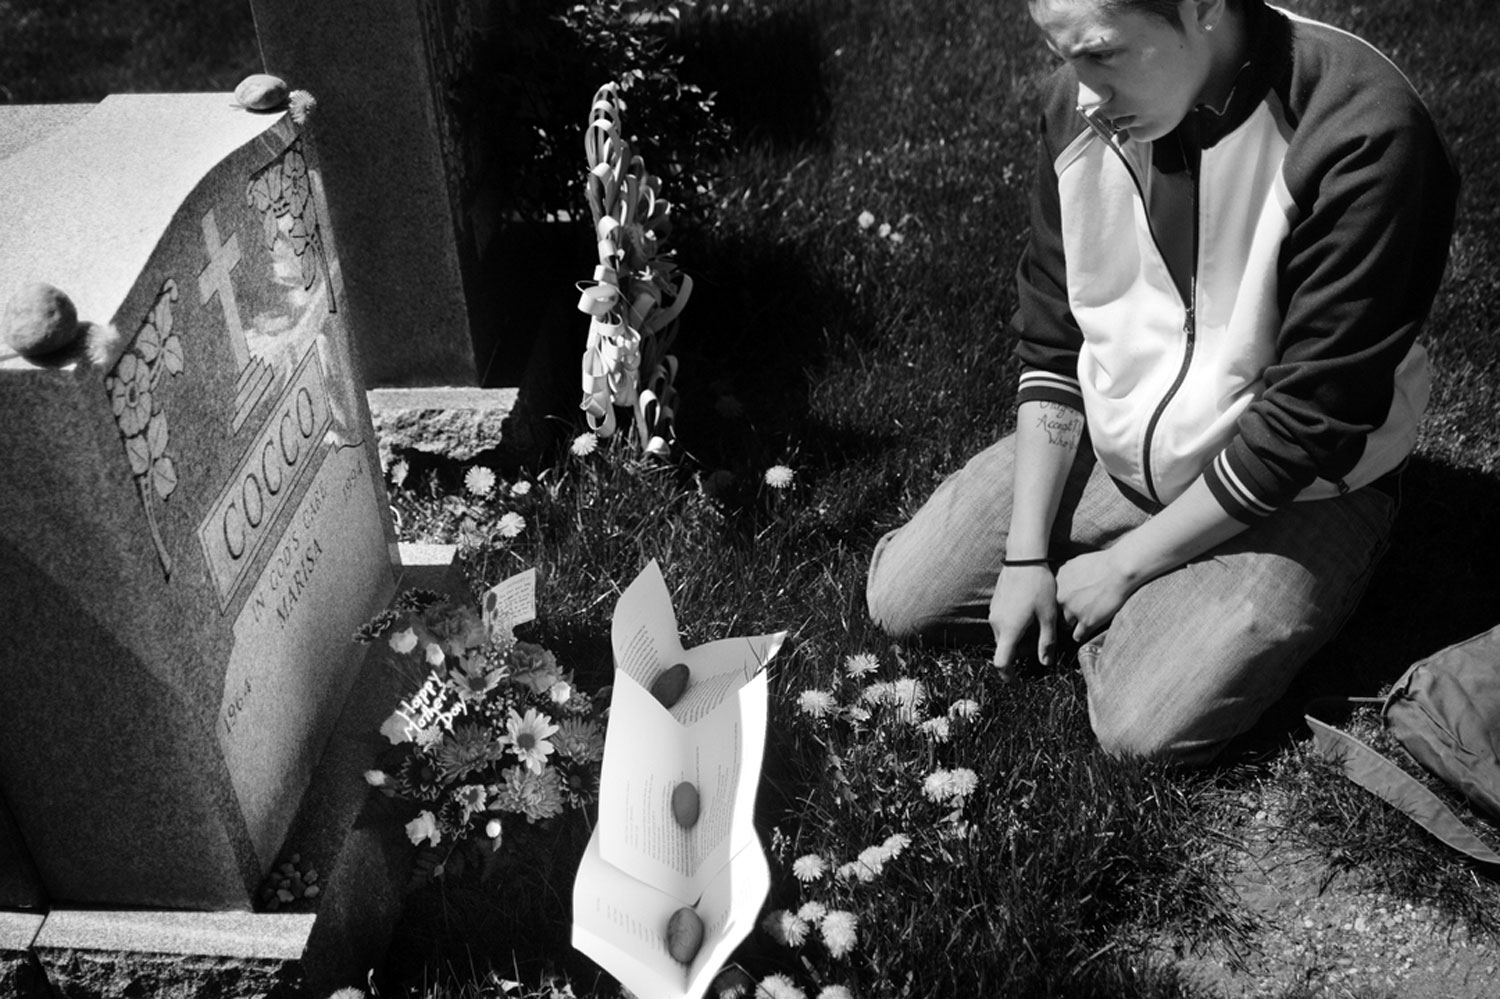 C. visits her mother's grave. May 2007.30% of all LGBT homeless youth have had experience in the foster care system; many LGBT youth run away from their placements in order to escape from discrimination or, in some cases, violence, at the hands of their staff members or foster parents.